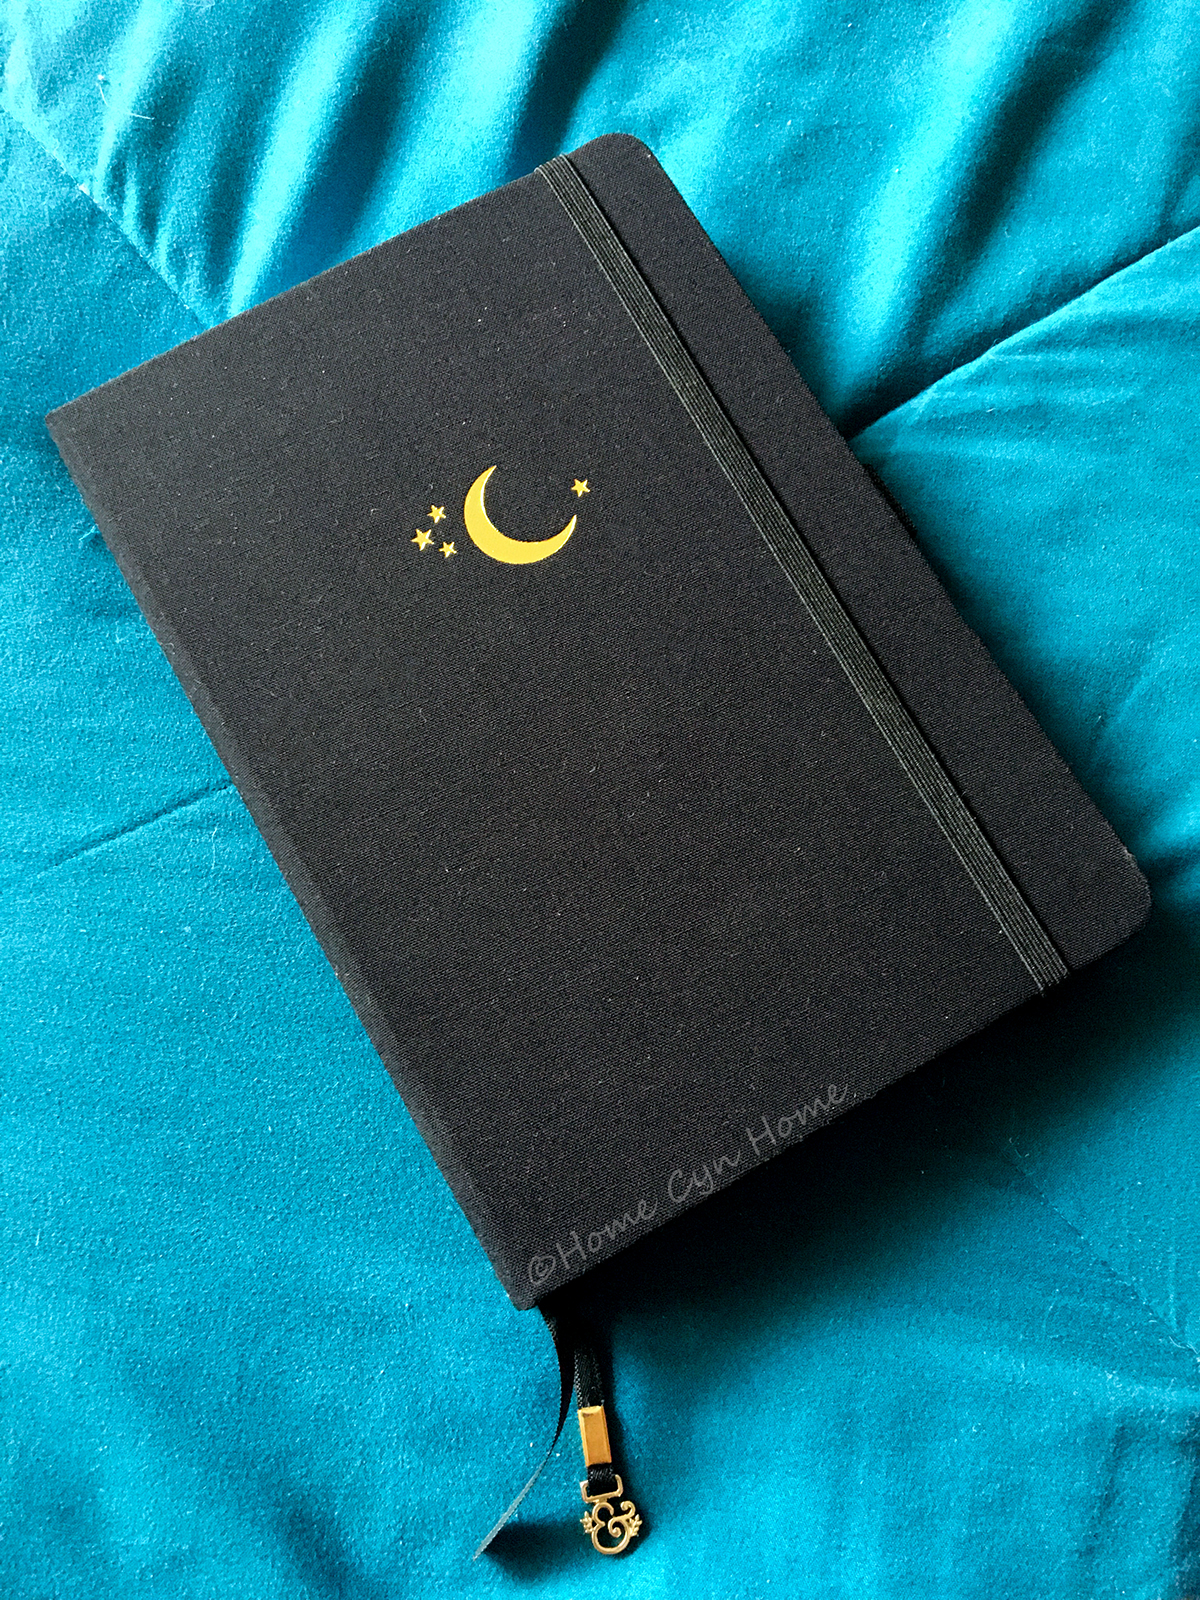 Black Archer and Olive notebook